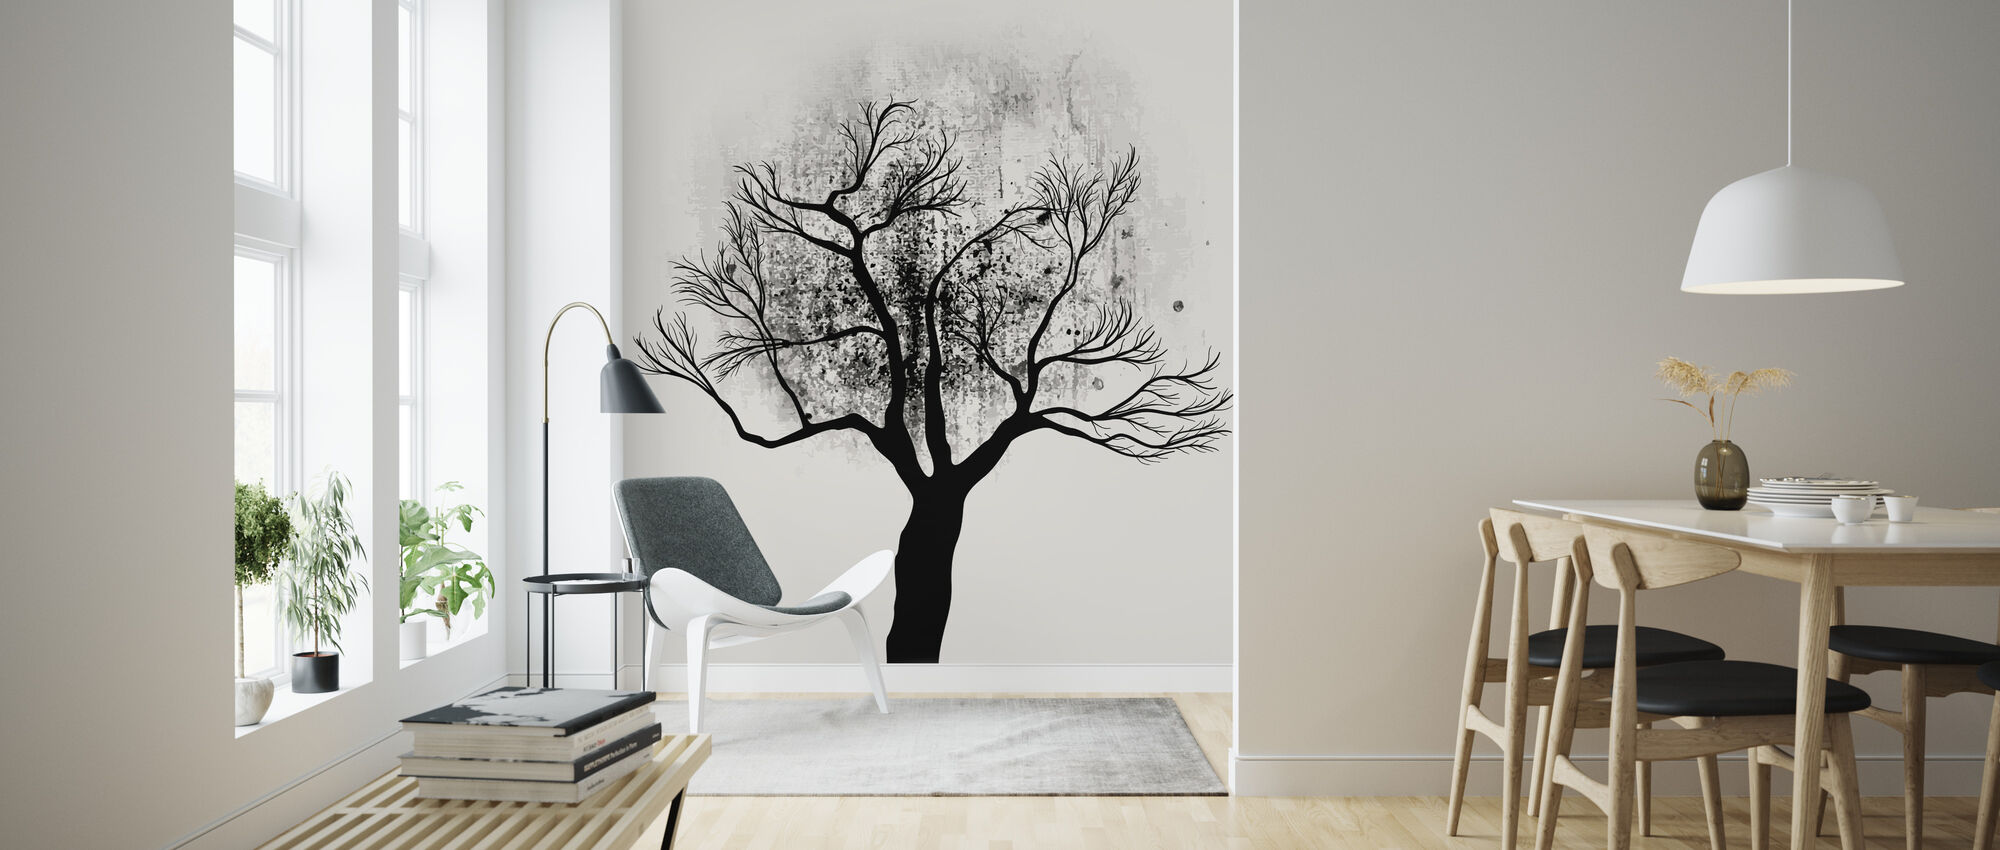 Tree Study No 5 - Wallpaper - Living Room